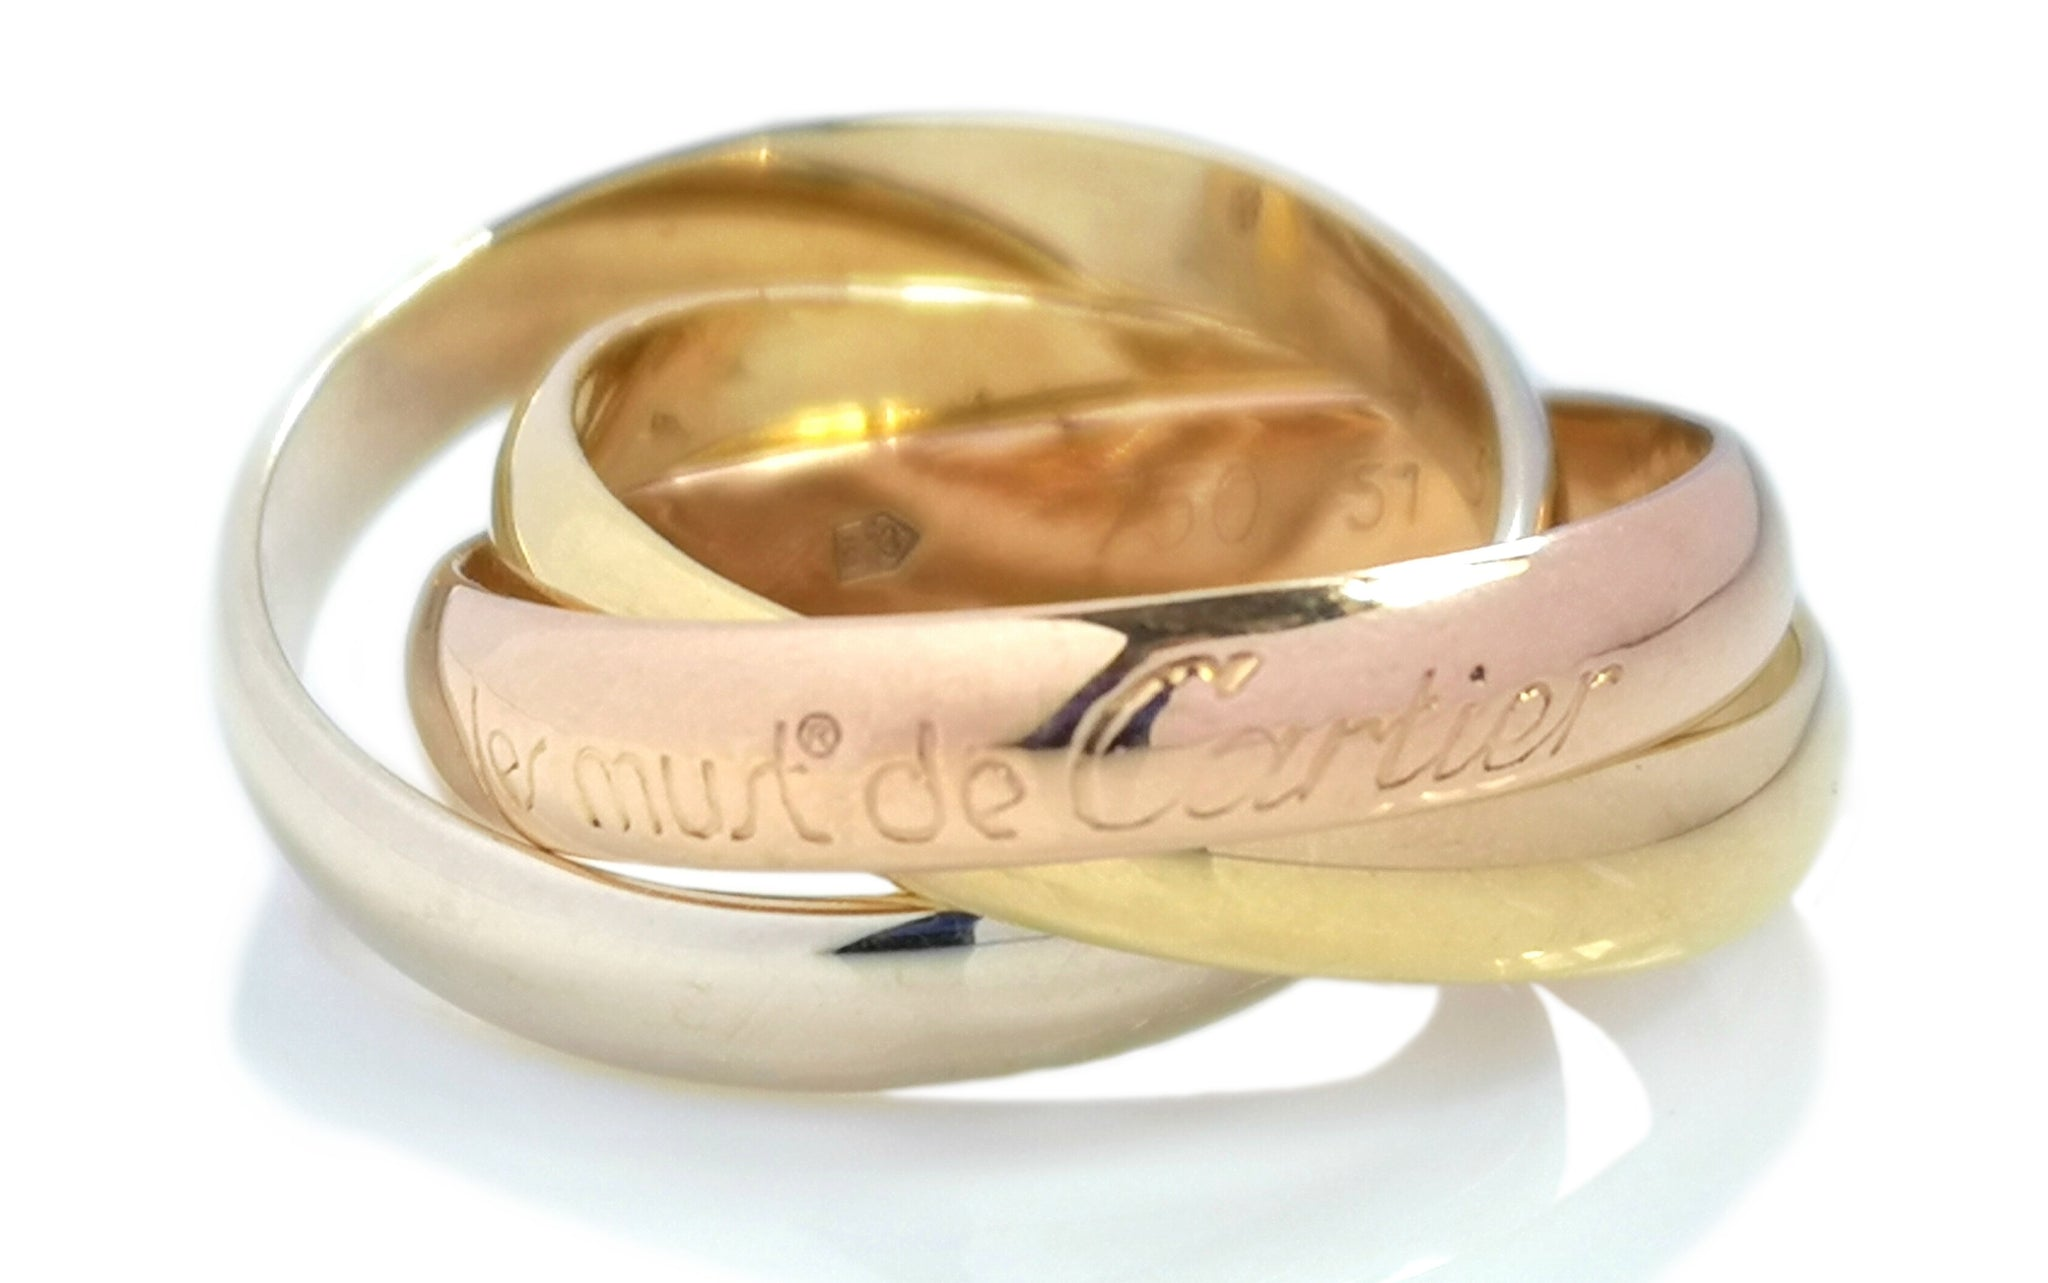 Vintage Les Must de Cartier Trinity Ring in 18k Gold, Sz J (51)